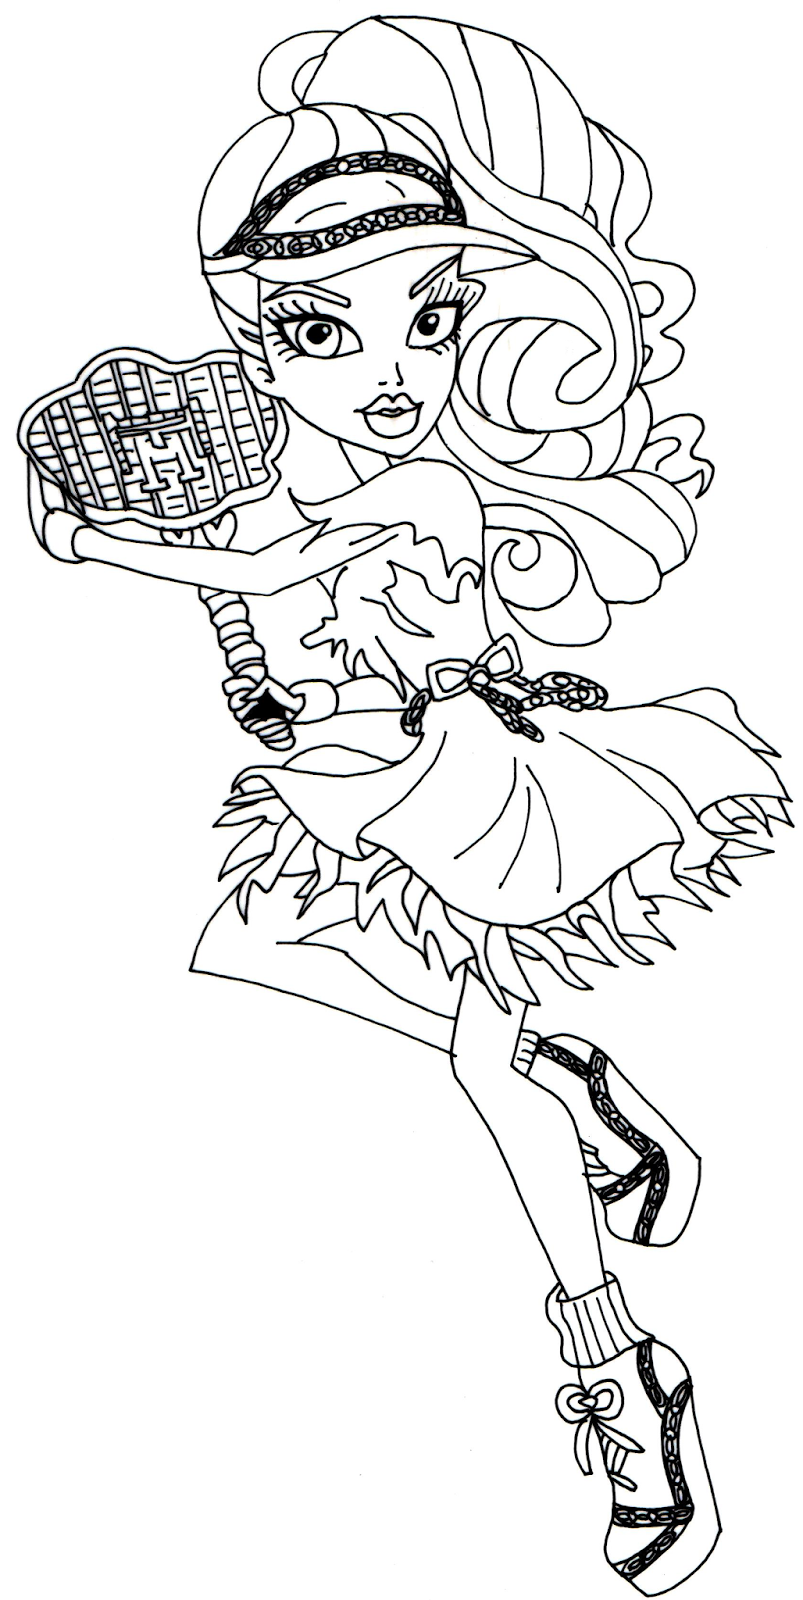 Free printable monster high coloring pages june 2014 for Monster high printables coloring pages